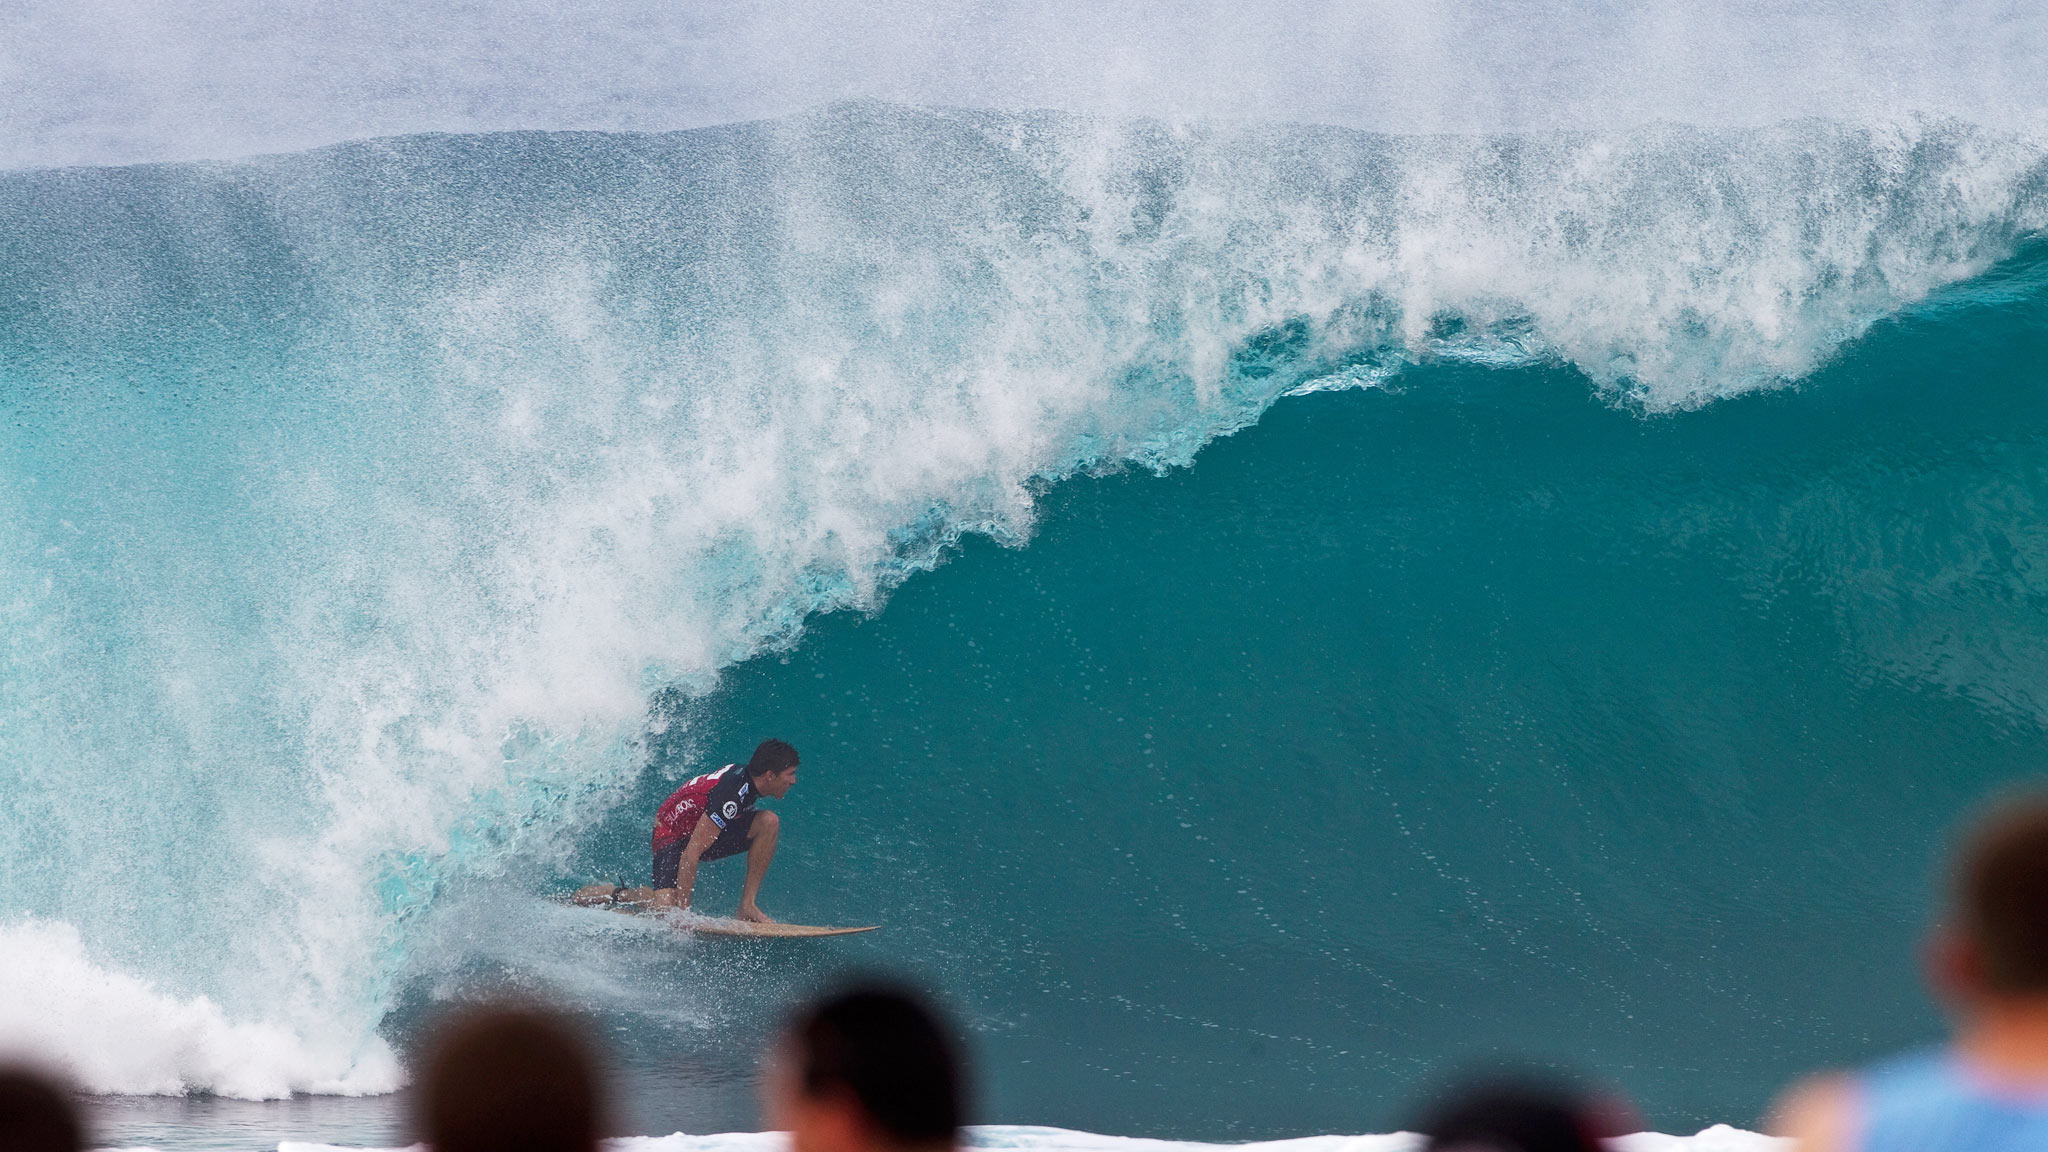 Tube Time At Pipeline